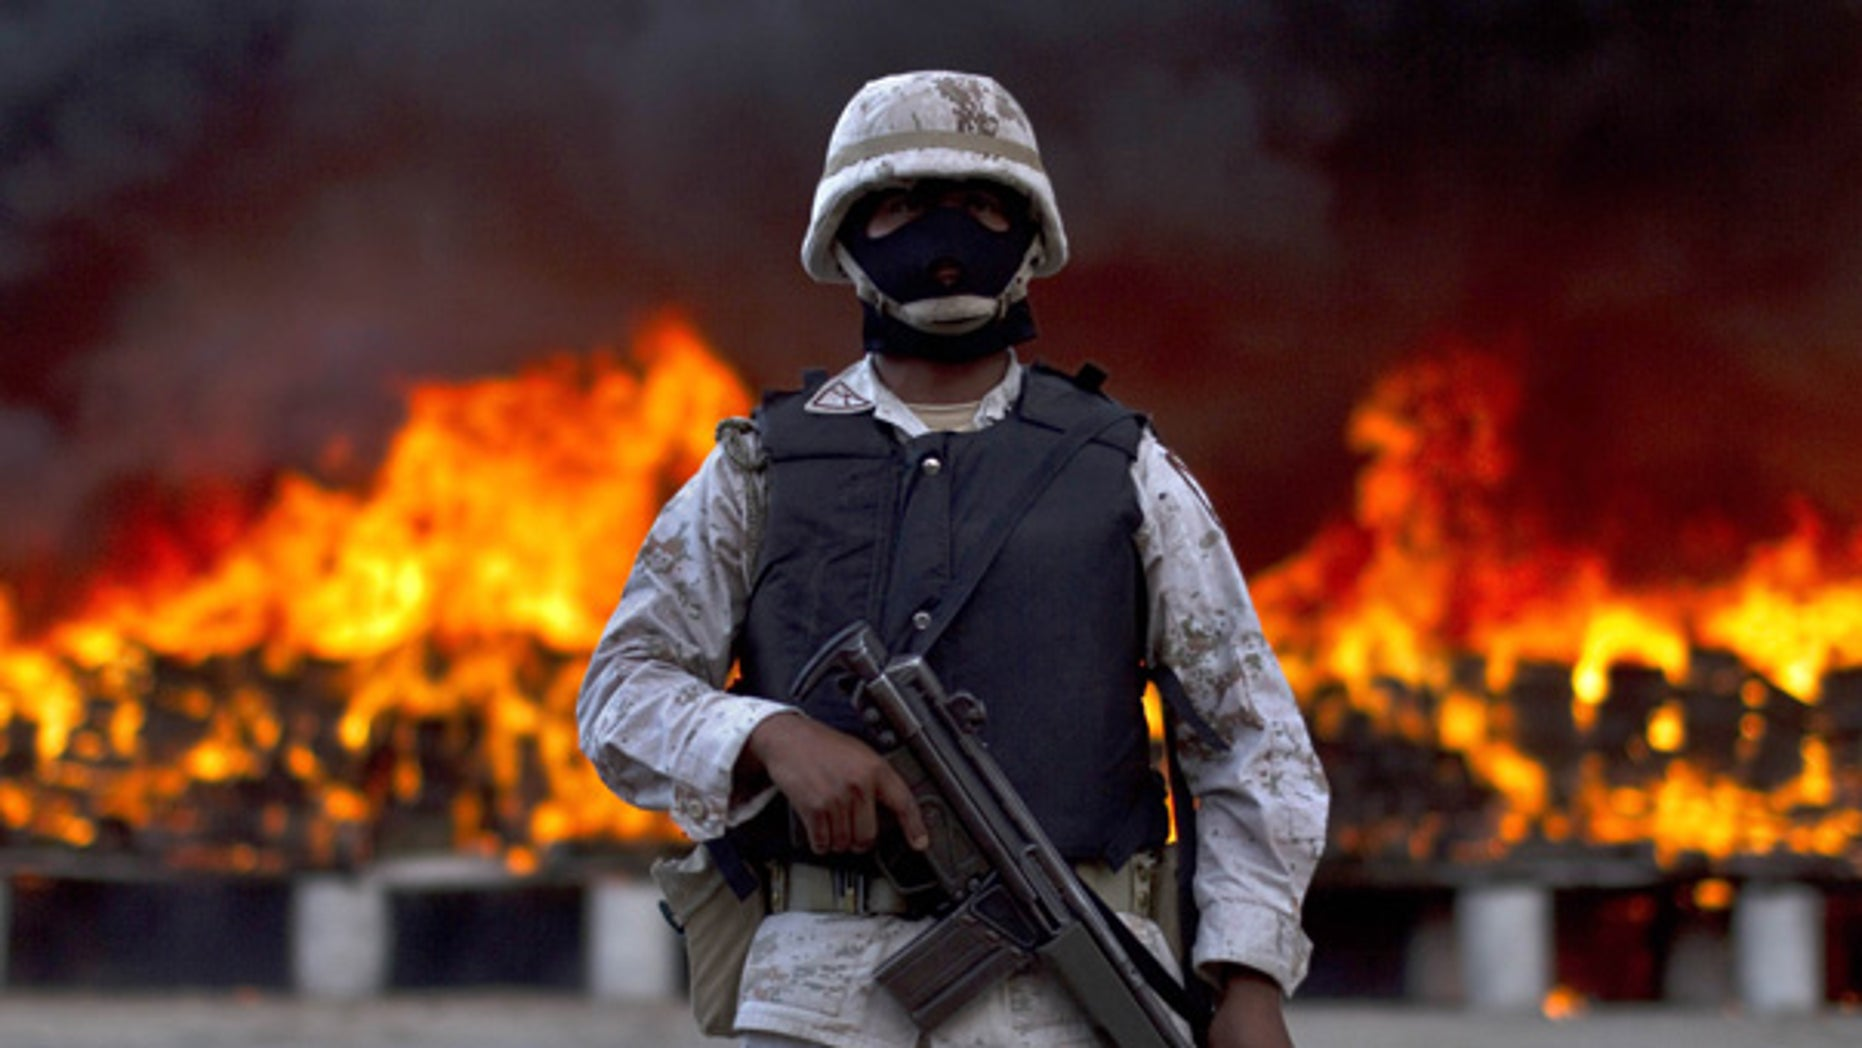 Oct. 20: A soldier guards packages of marijuana being incinerated after army and police seized 134 tons of U.S.-bound pot in Tijuana.